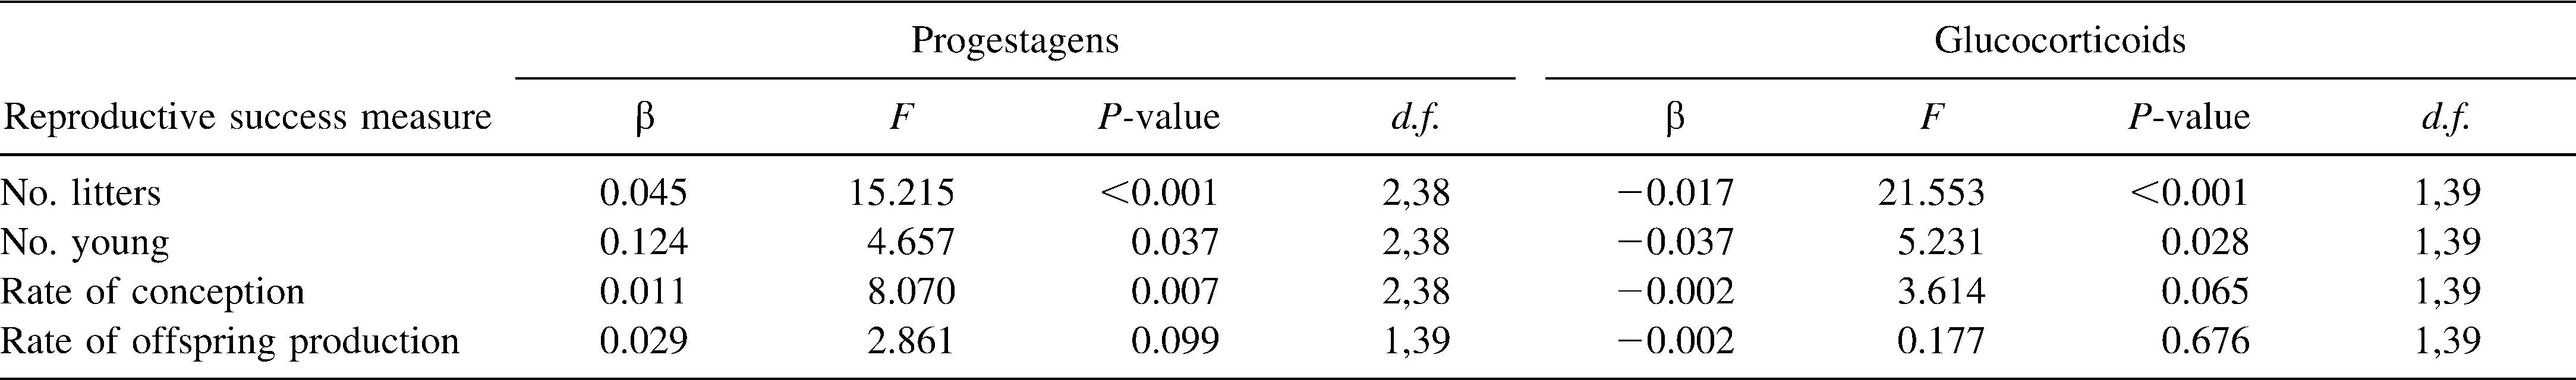 Relationship between fecal hormone concentrations and reproductive